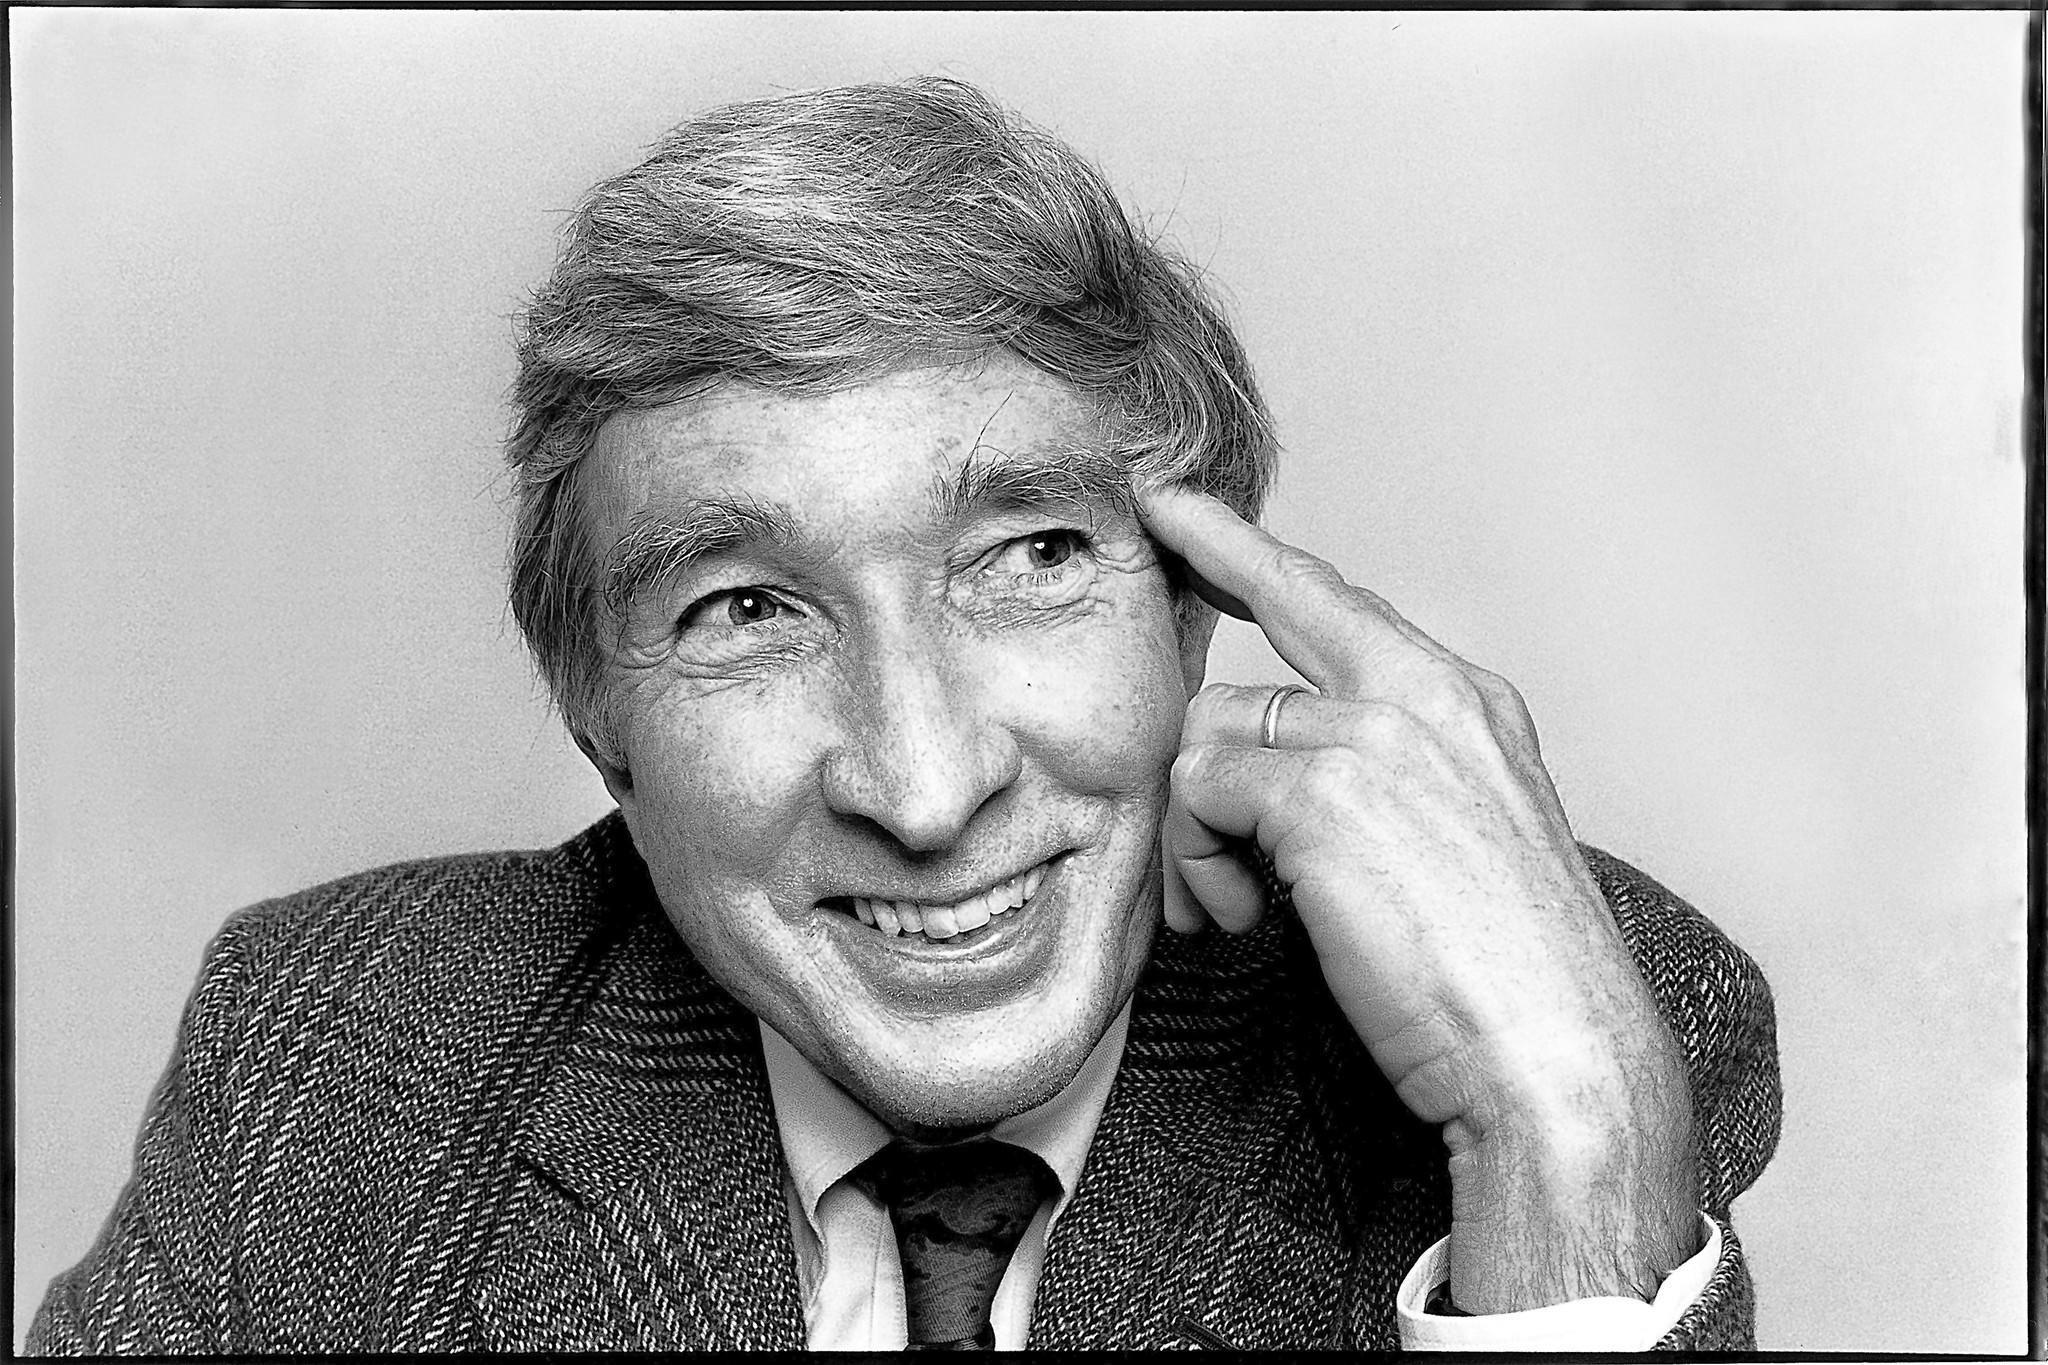 sticking to principle in john updikes ap John hoyer updike (march 18 1932 - january 27 2009) was an american novelist, poet, critic and short-story writer the city overwhelmed our expectations the kiplingesque grandeur of waterloo station.